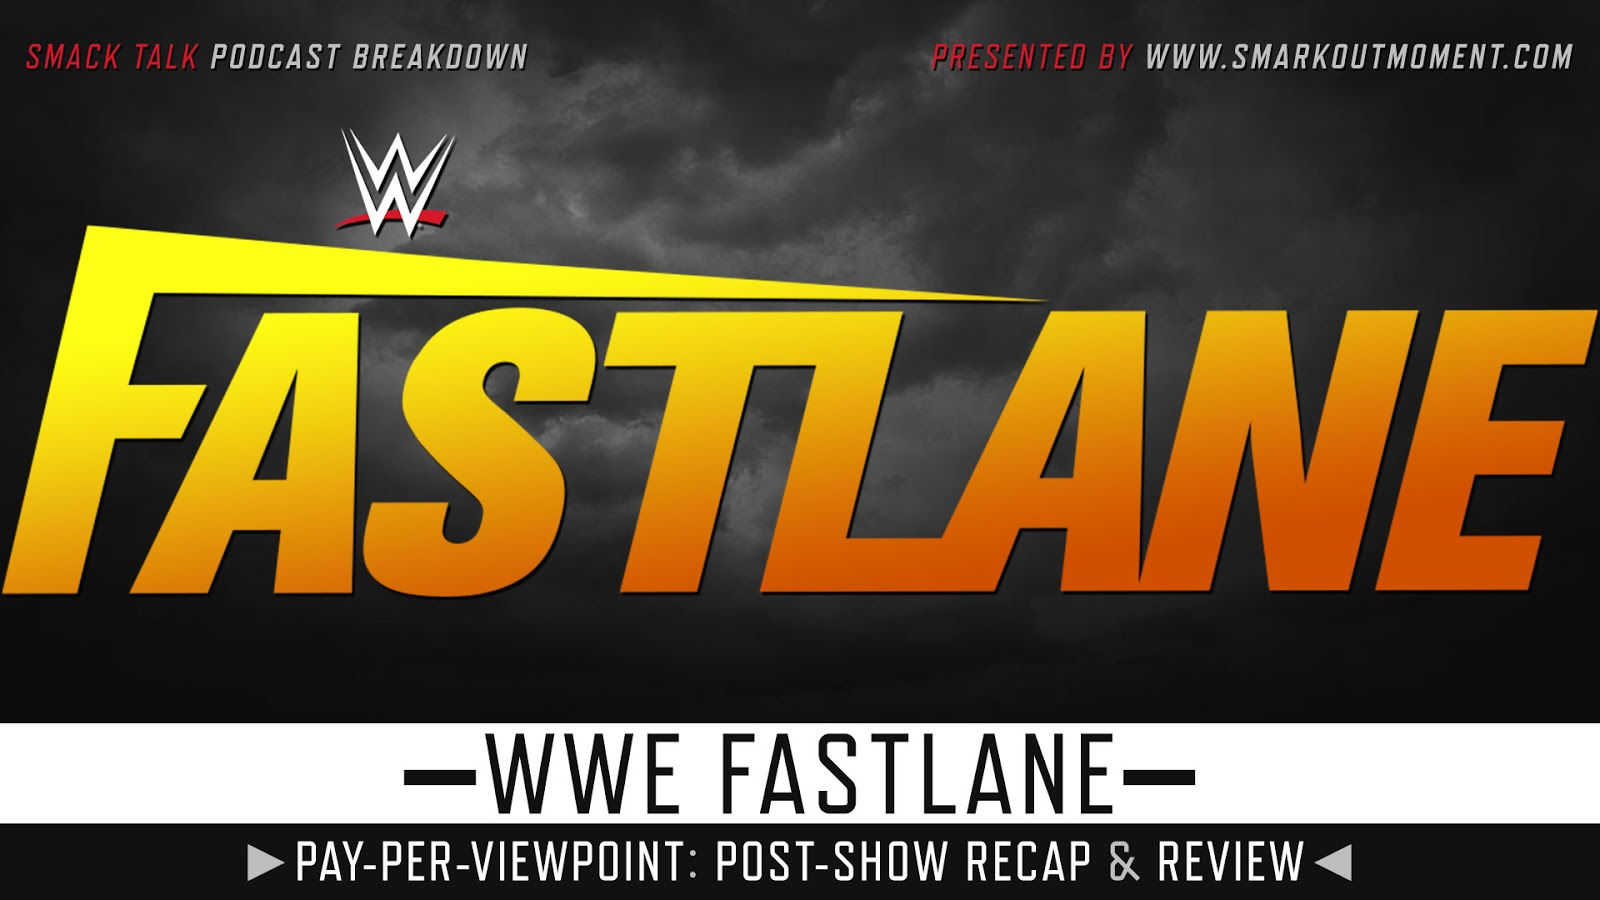 WWE Fastlane 2019 Recap and Review Podcast